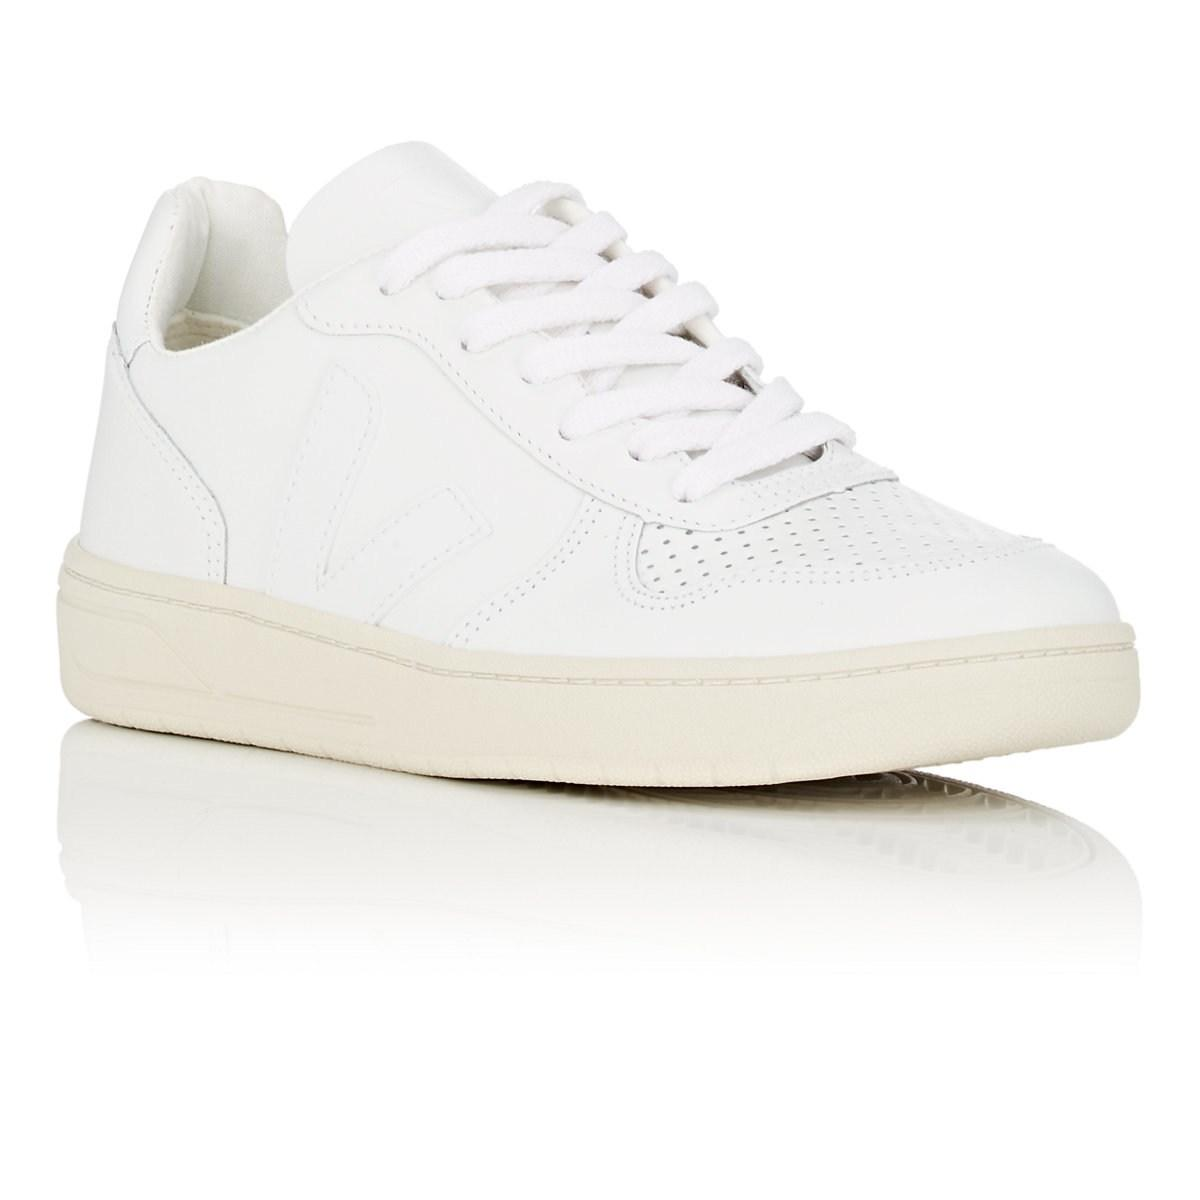 2248e939b7c9 Veja - White V-10 Leather Sneakers - Lyst. View fullscreen